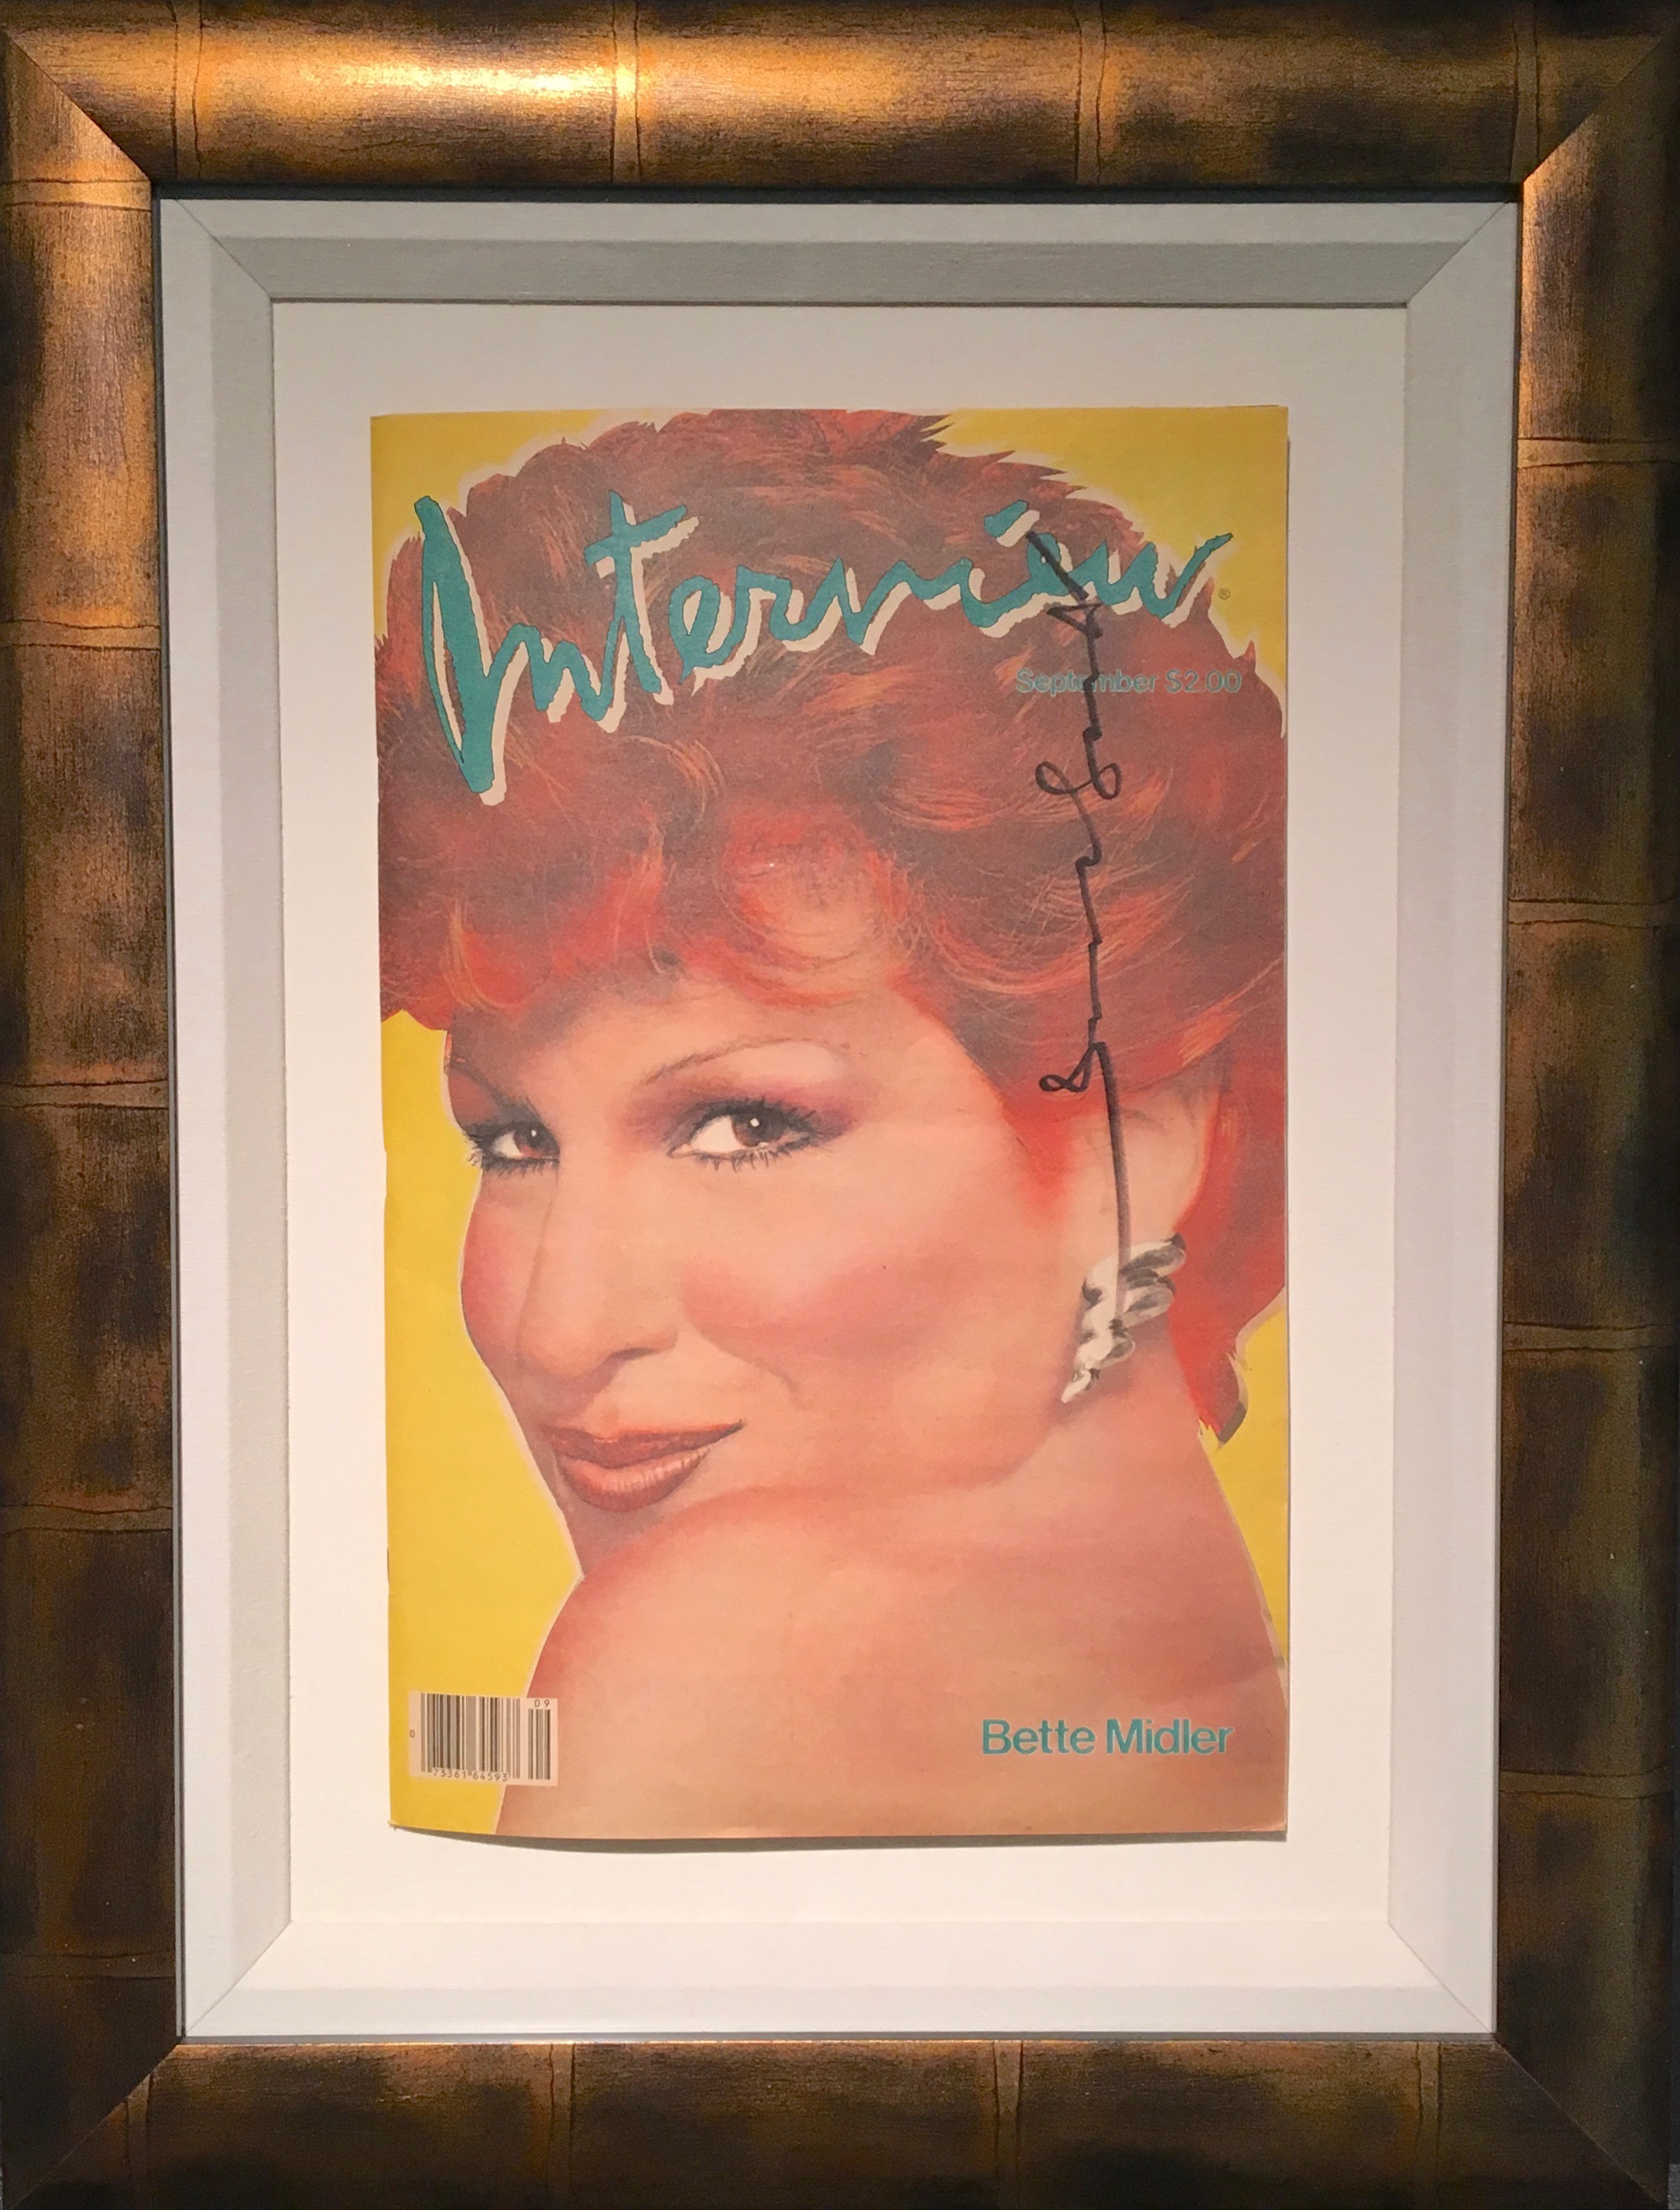 Limo For Sale >> Interview Magazine - Bette Midler 1982 - Signed by Andy ...